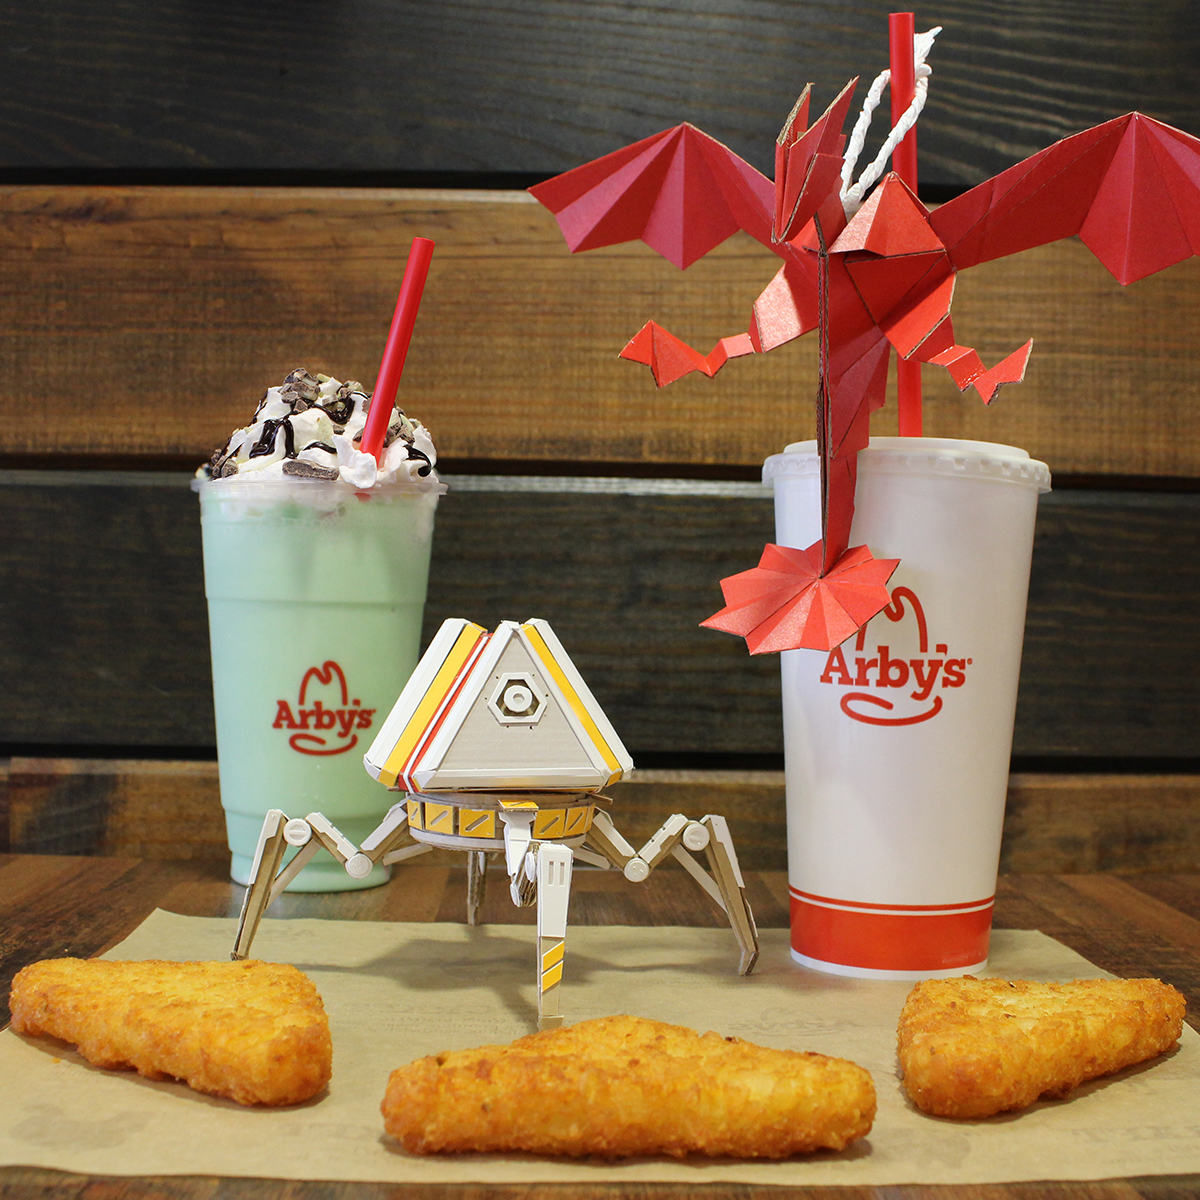 Replying to @Arbys: We couldn't wait for our reward, so we made it ourselves. Happy anniversary, Legends! #ApexLegends